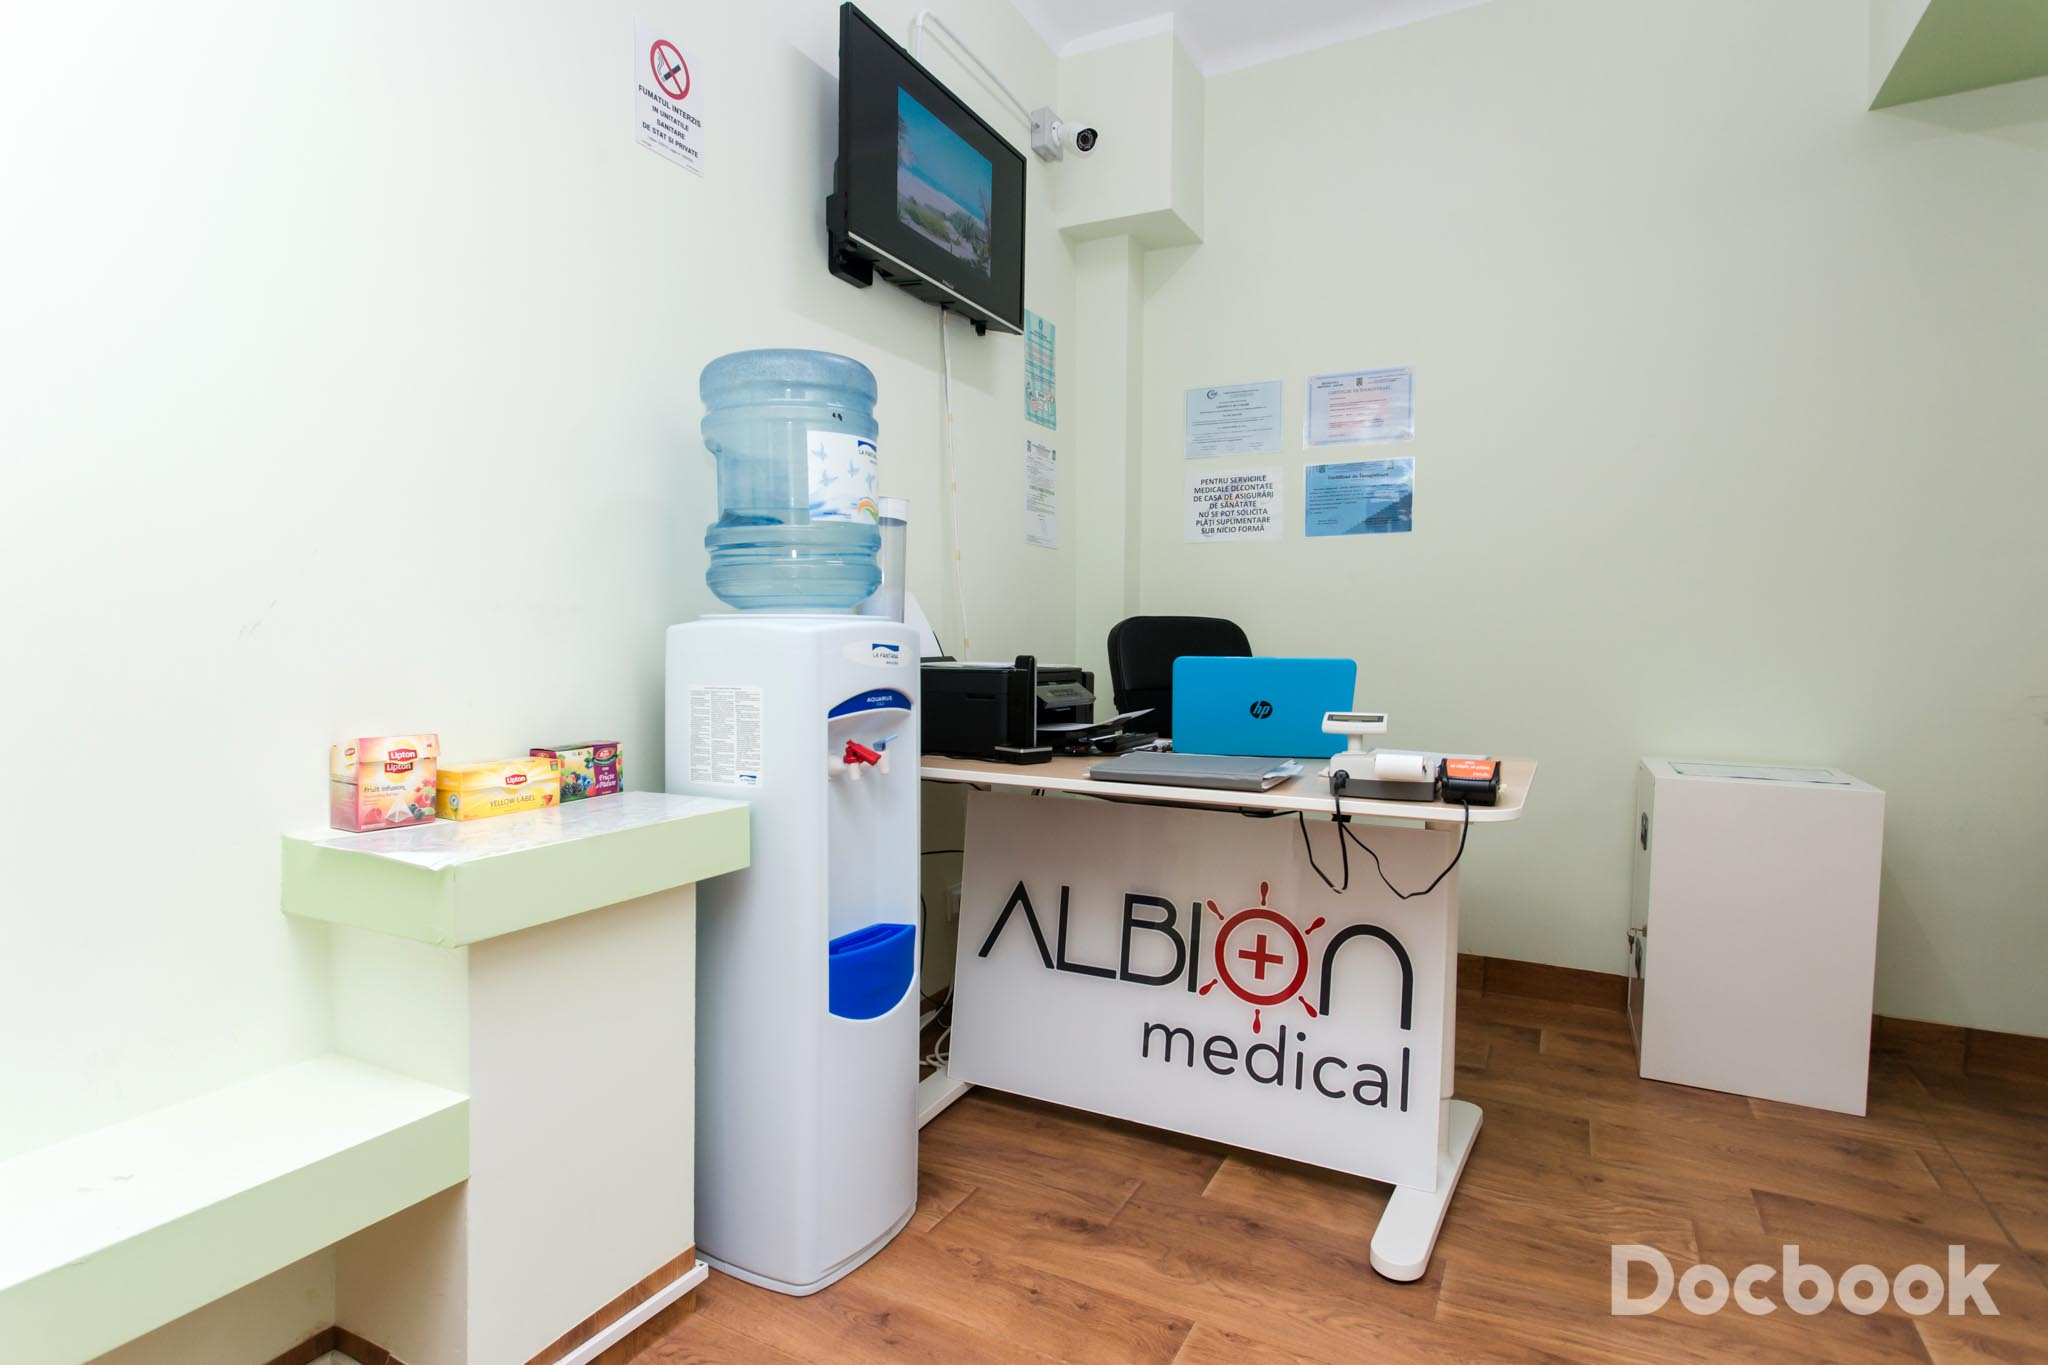 Clinica Albion Medical